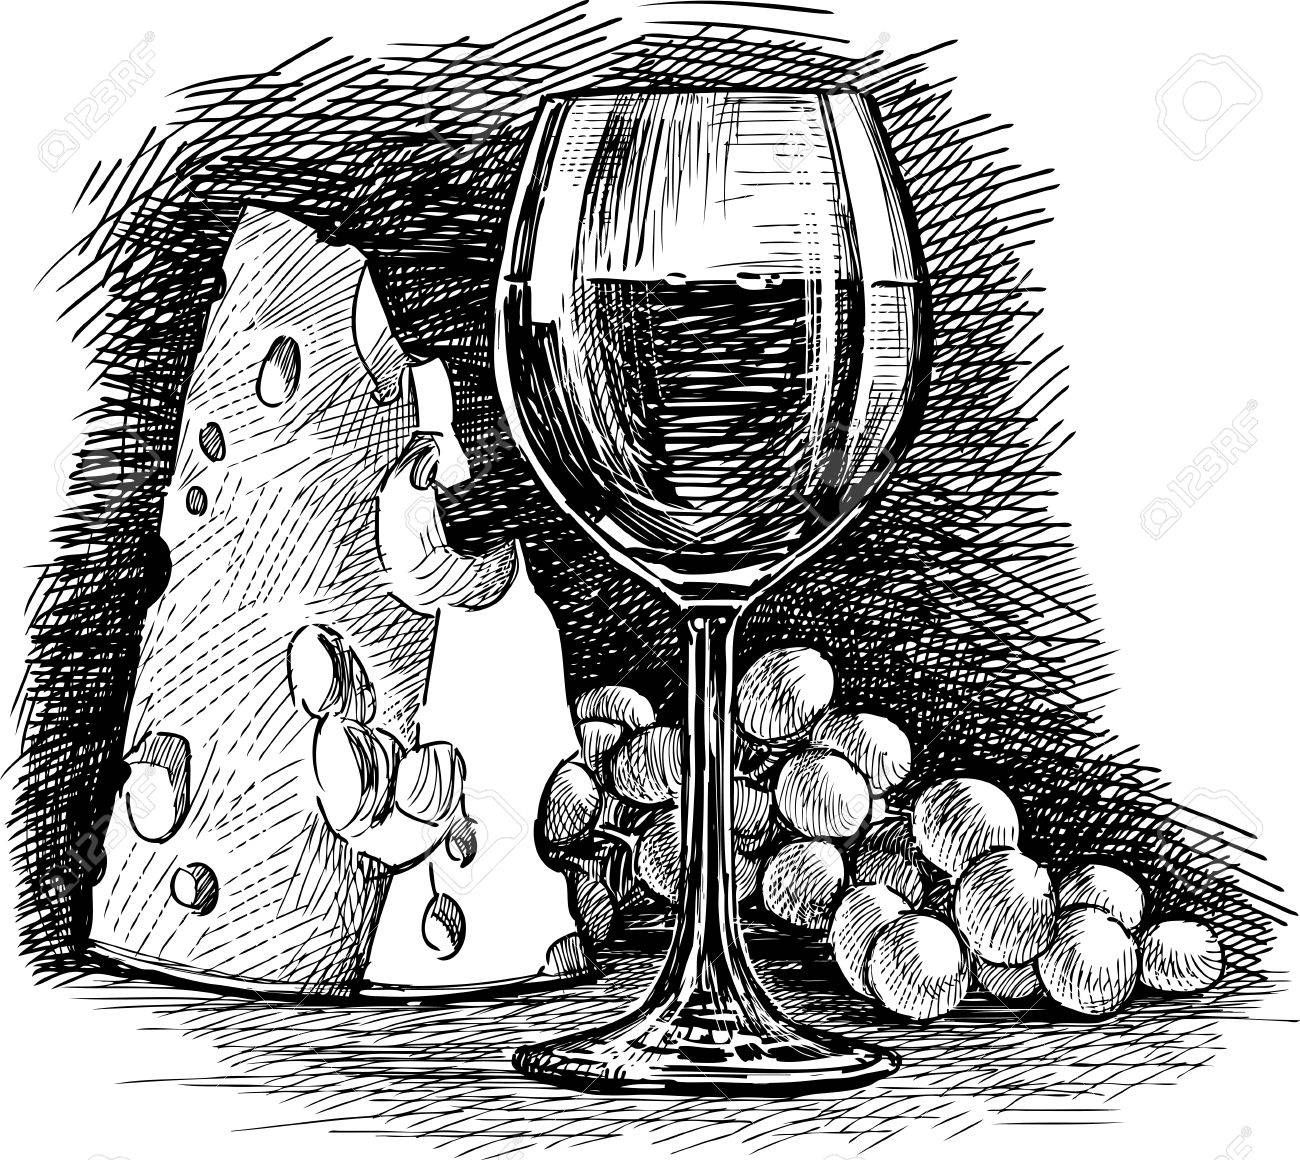 Related image Vine drawing, Wine glass drawing, Wine